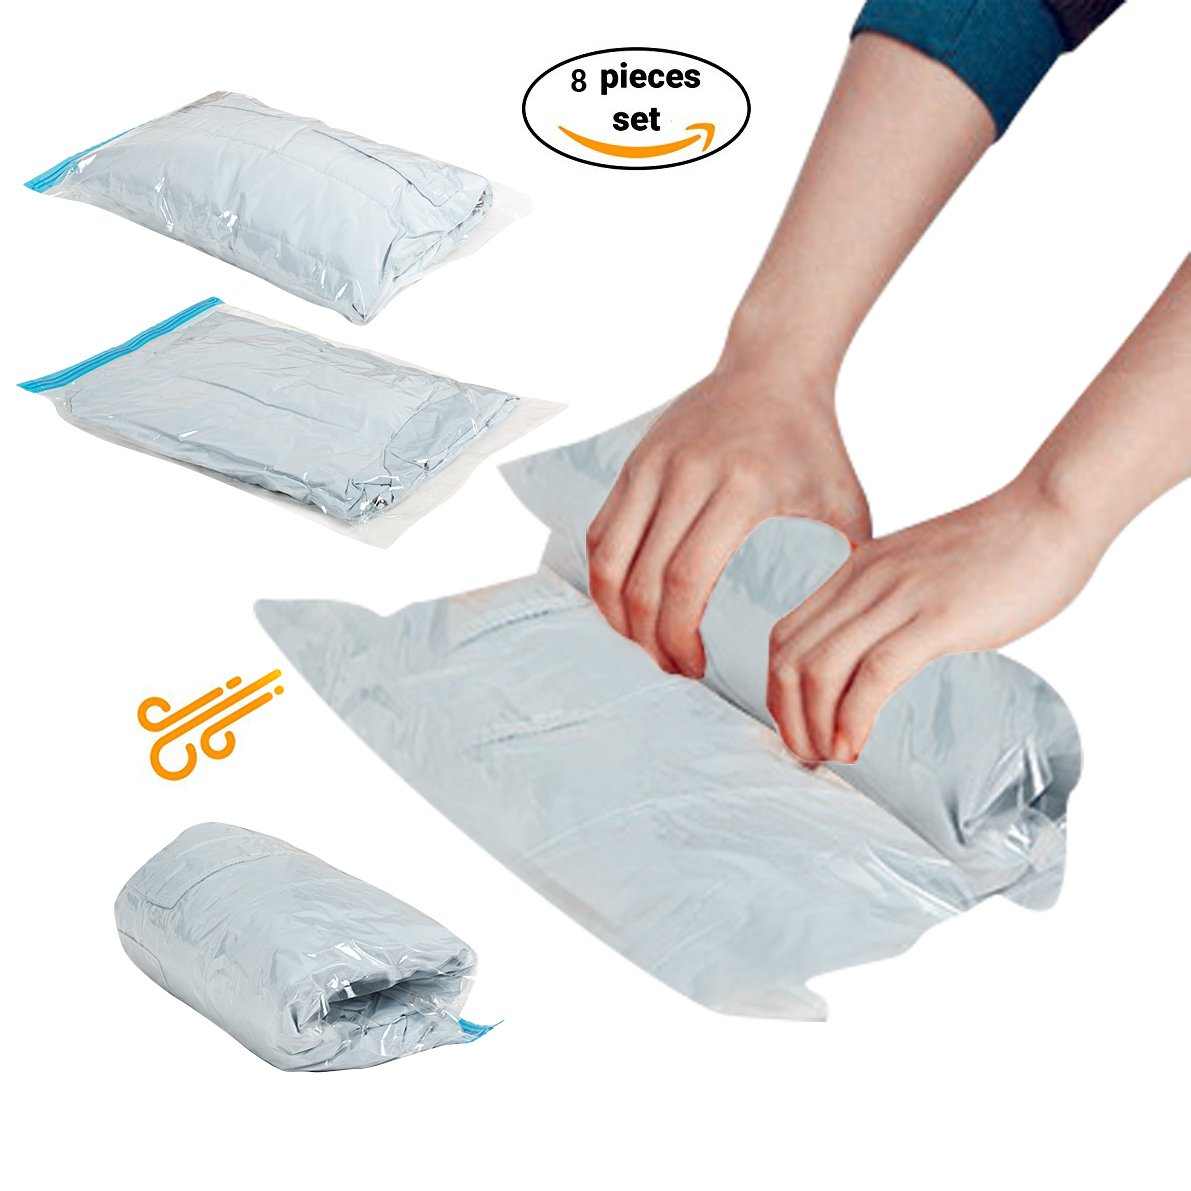 Stephenie Travel Storage Bags For Clothes Space Saver Packing Sacks Rolling Compression Bag For Luggage Air Space Roll Up Bags No Vacuum or Pump Needed (8pcs (2J+2L+2M+2S))